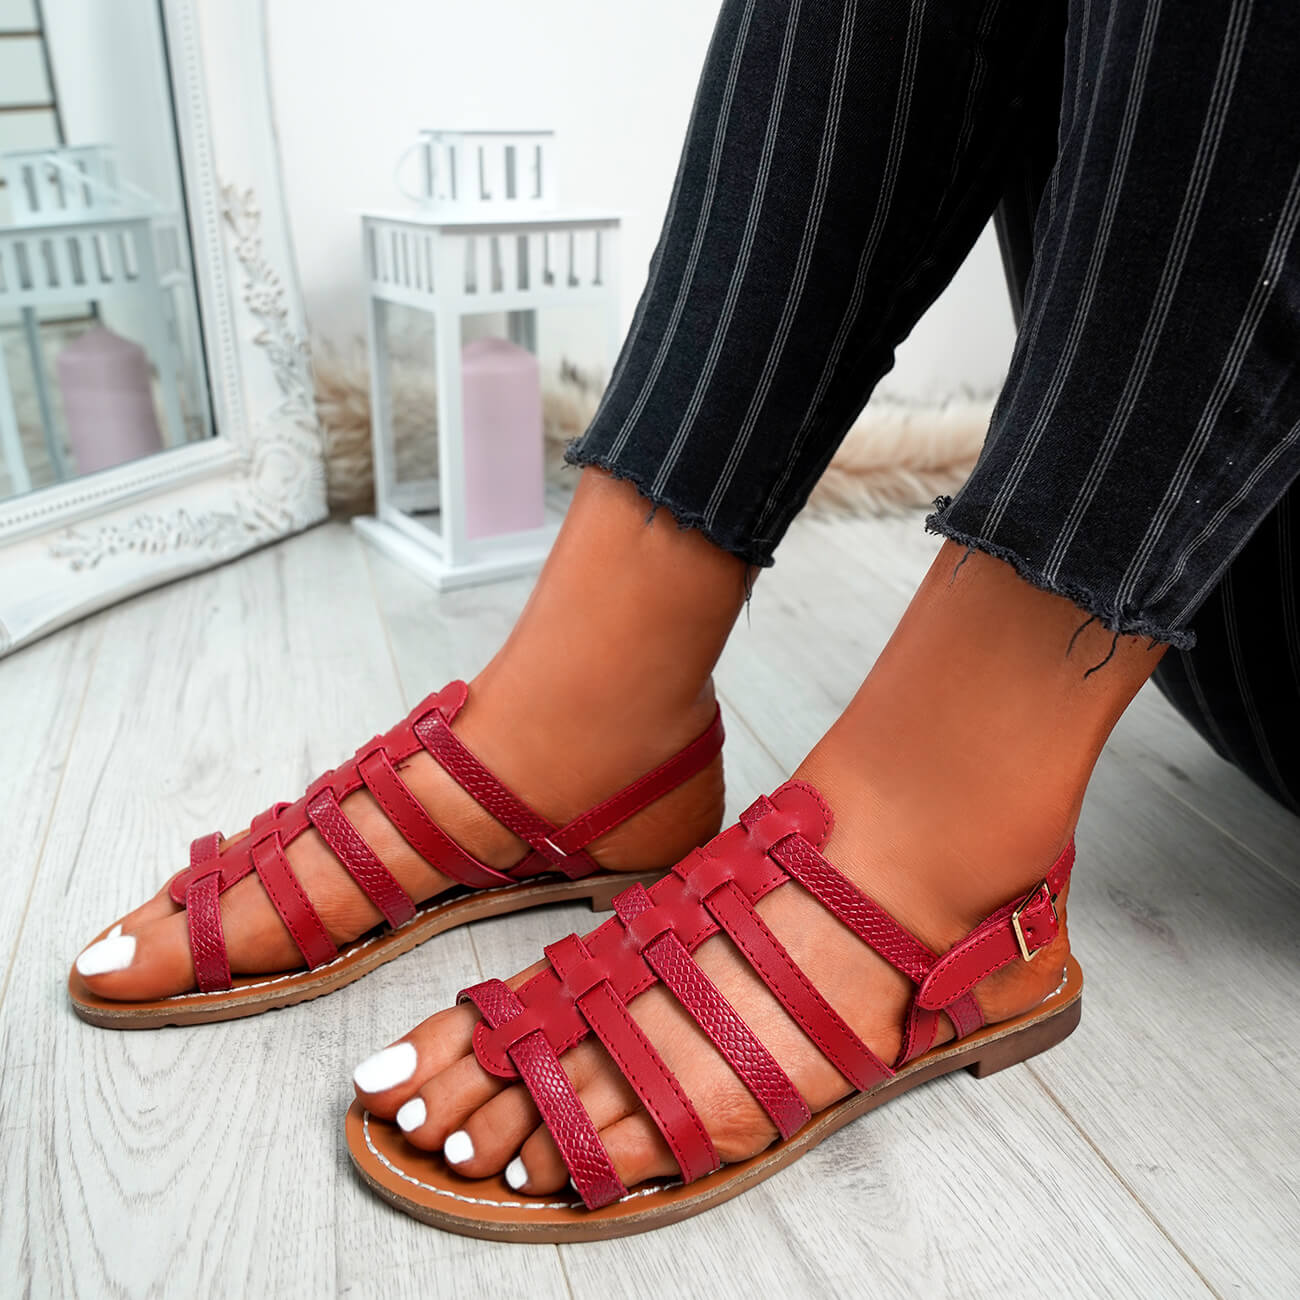 WOMENS-LADIES-BUCKLE-STRAP-FLAT-SUMMER-SANDALS-CASUAL-HOLIDAY-COMFY-SHOES-SIZE thumbnail 29